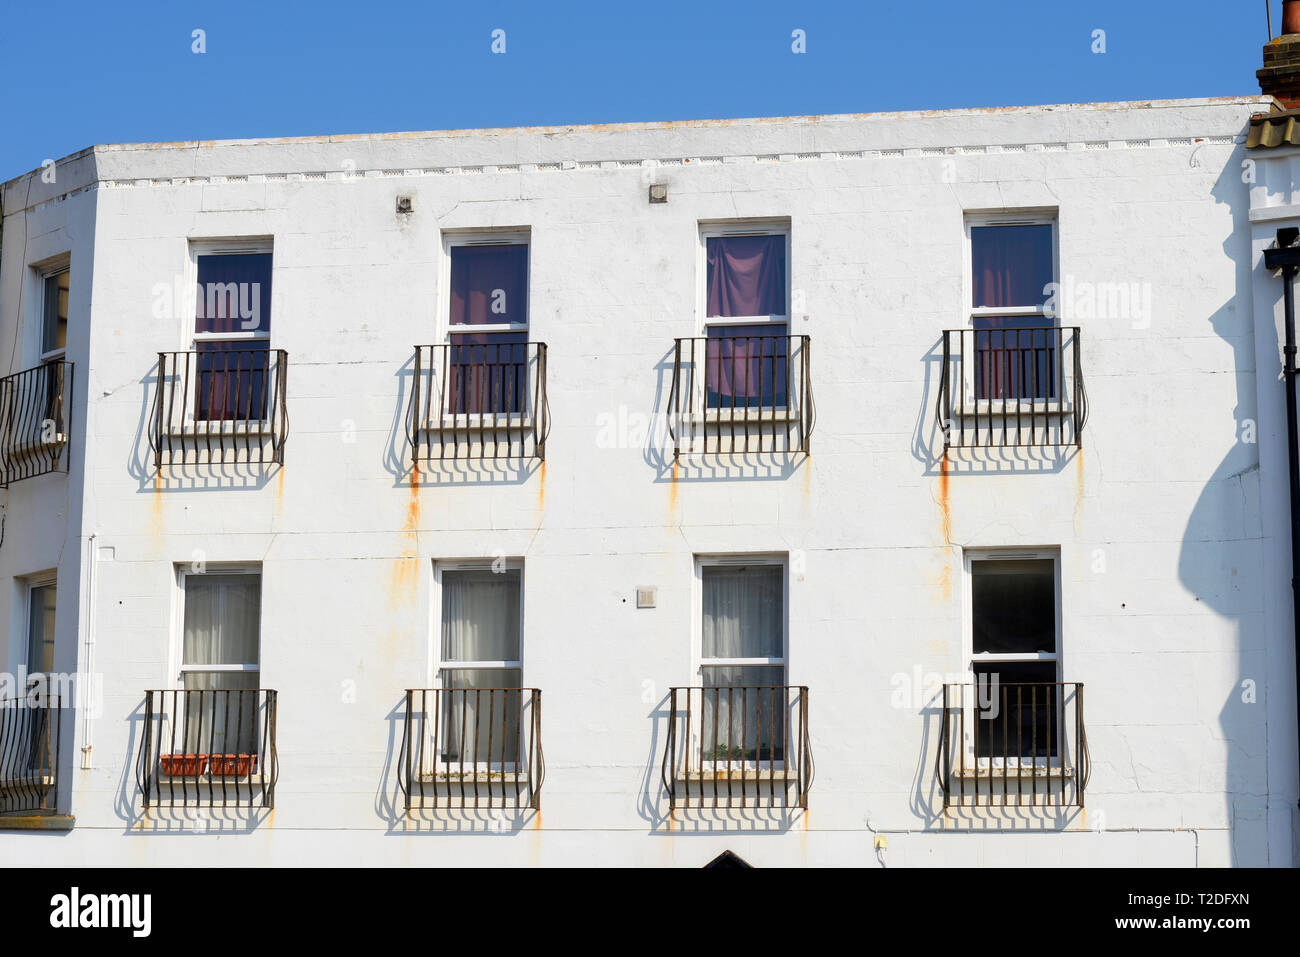 Plain bright white building with rust stains from metal Juliet balconies. Spoiled white paint. Balconet, balconette railings on facade. Space for copy - Stock Image